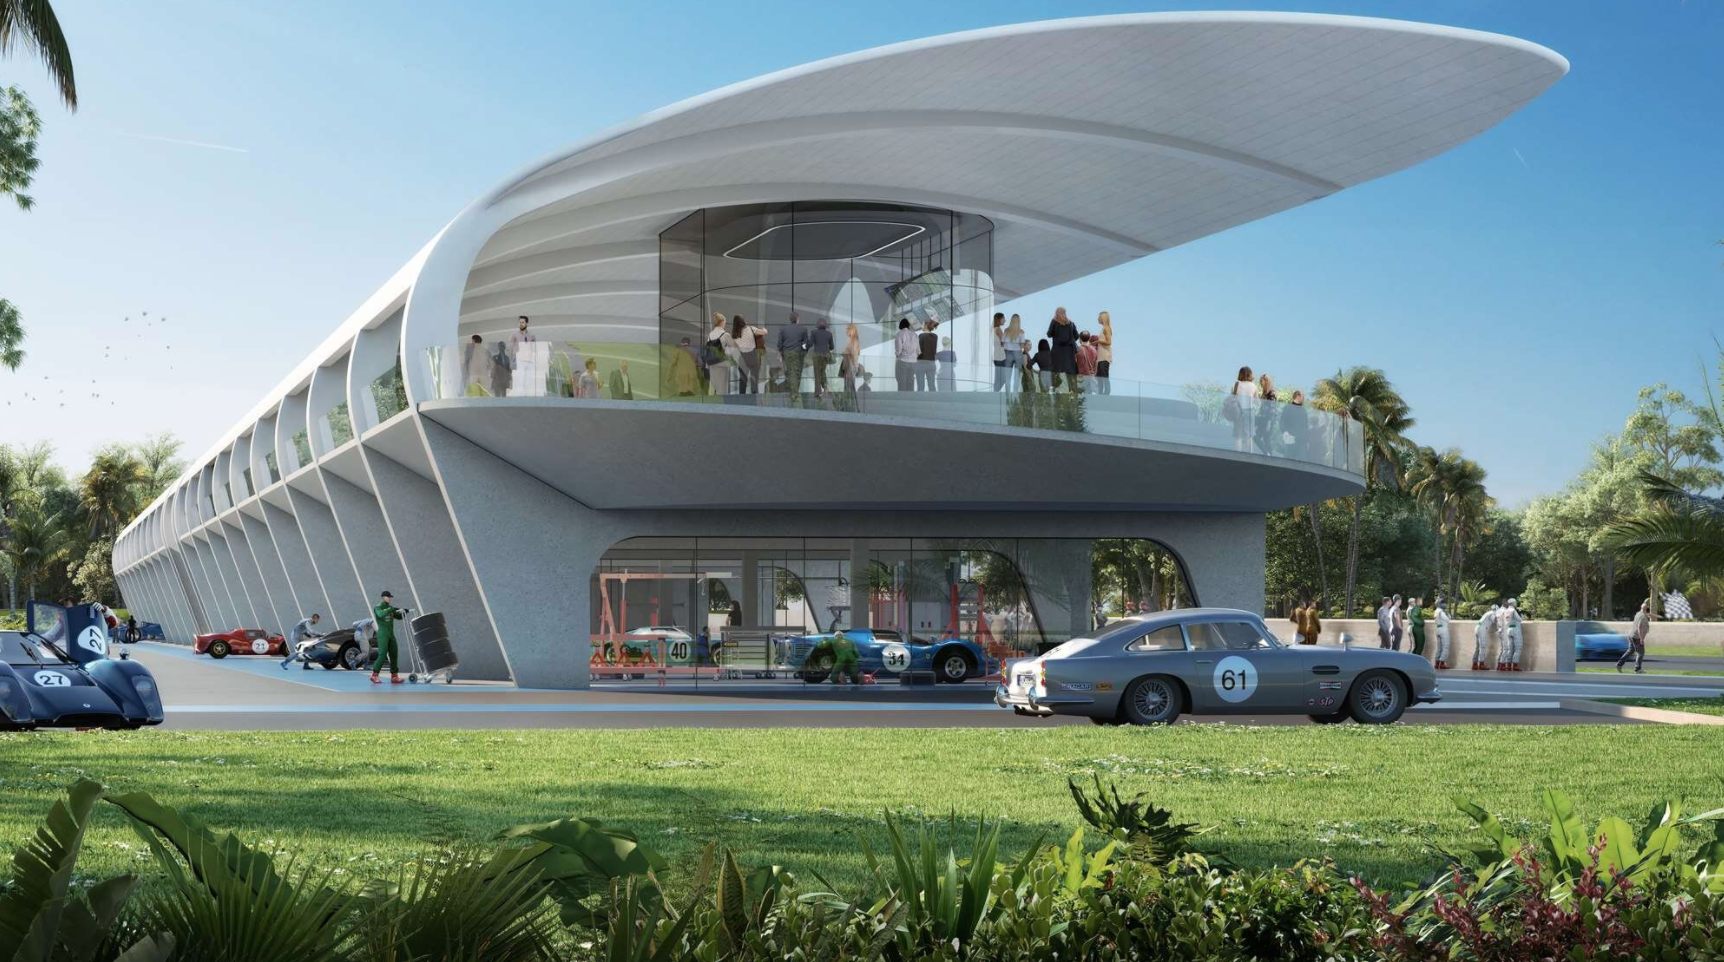 Drivers Club Miami. Designed by Norman Foster.